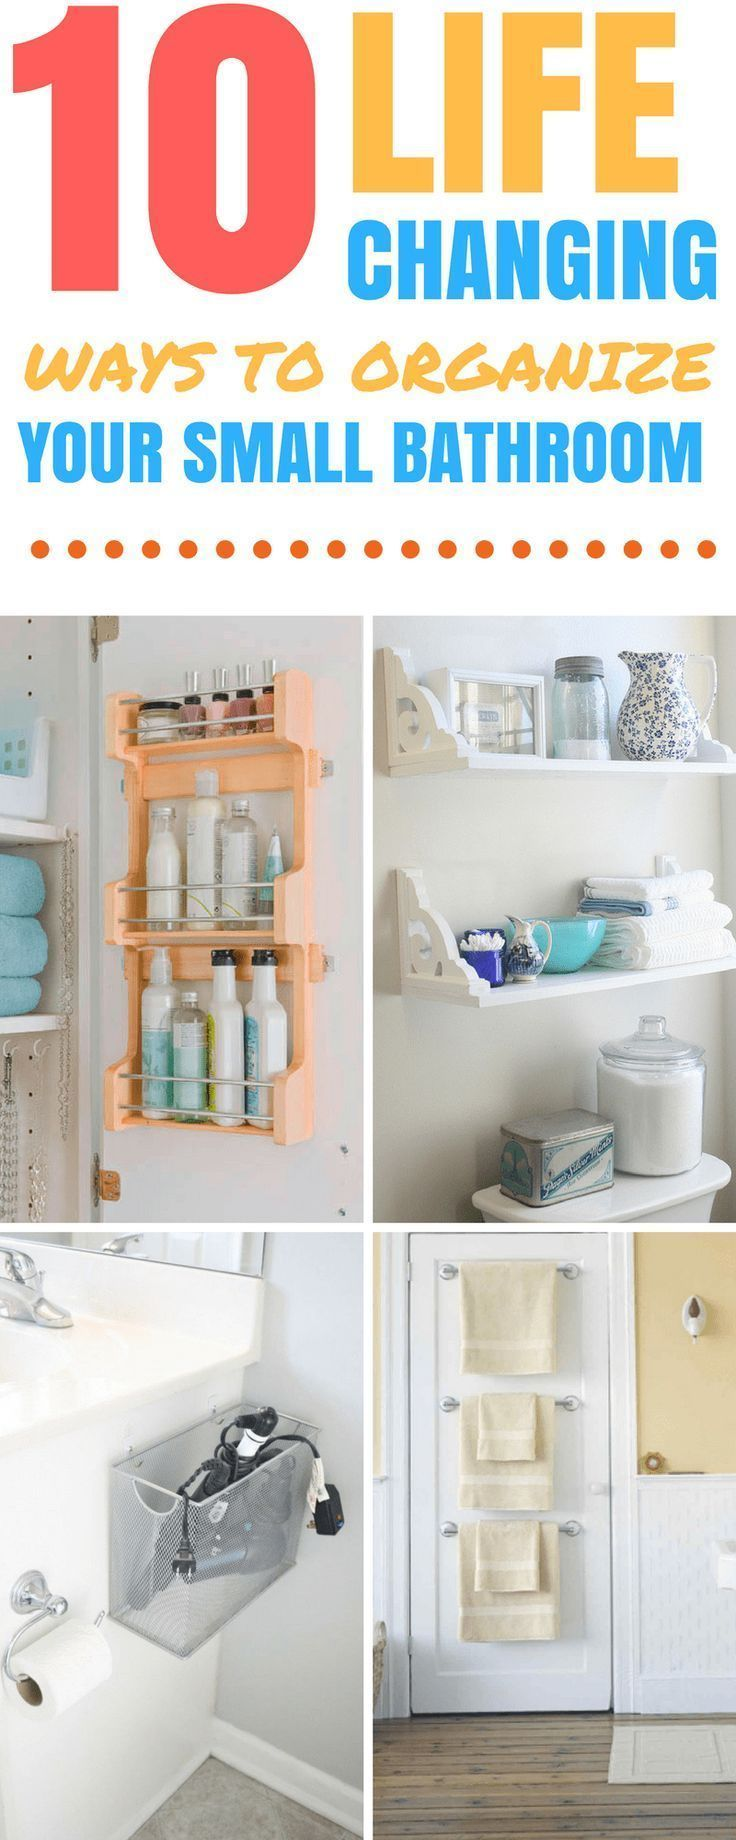 10 Awesome & Cheap Ideas to Organize Your Small Bathroom   Home ...